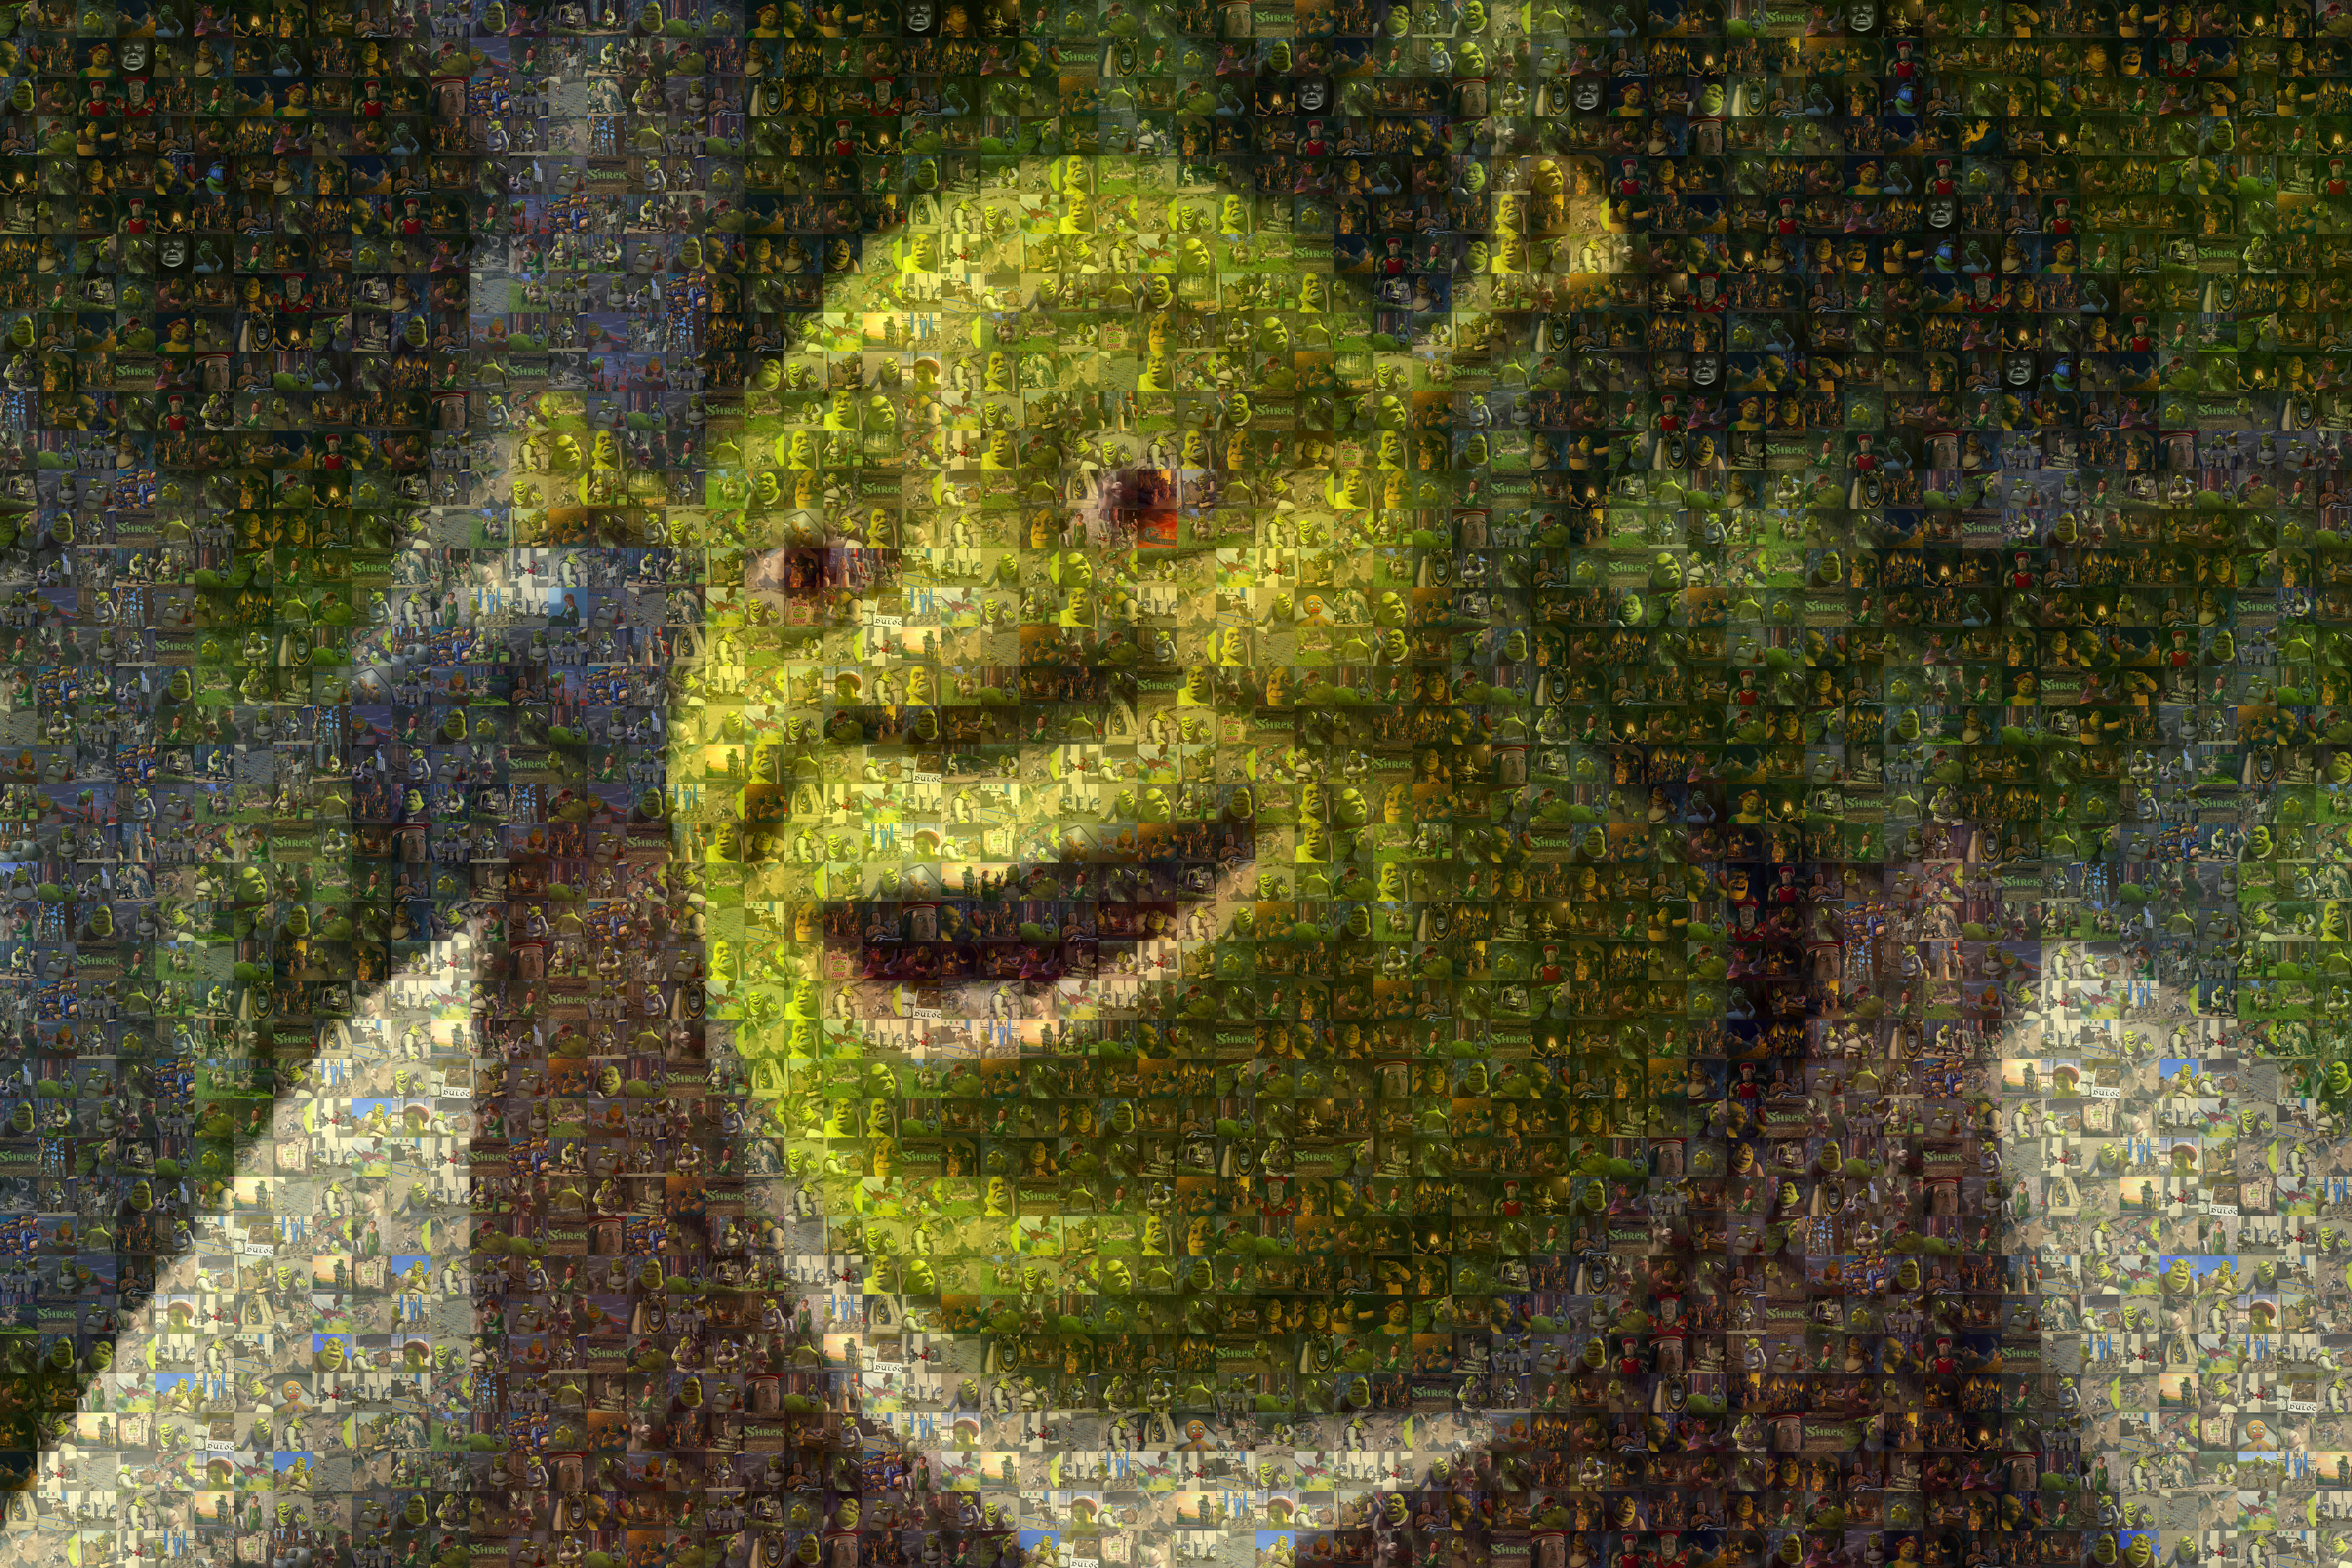 Image of the character Shrek made from hundreds of pictures of Shrek